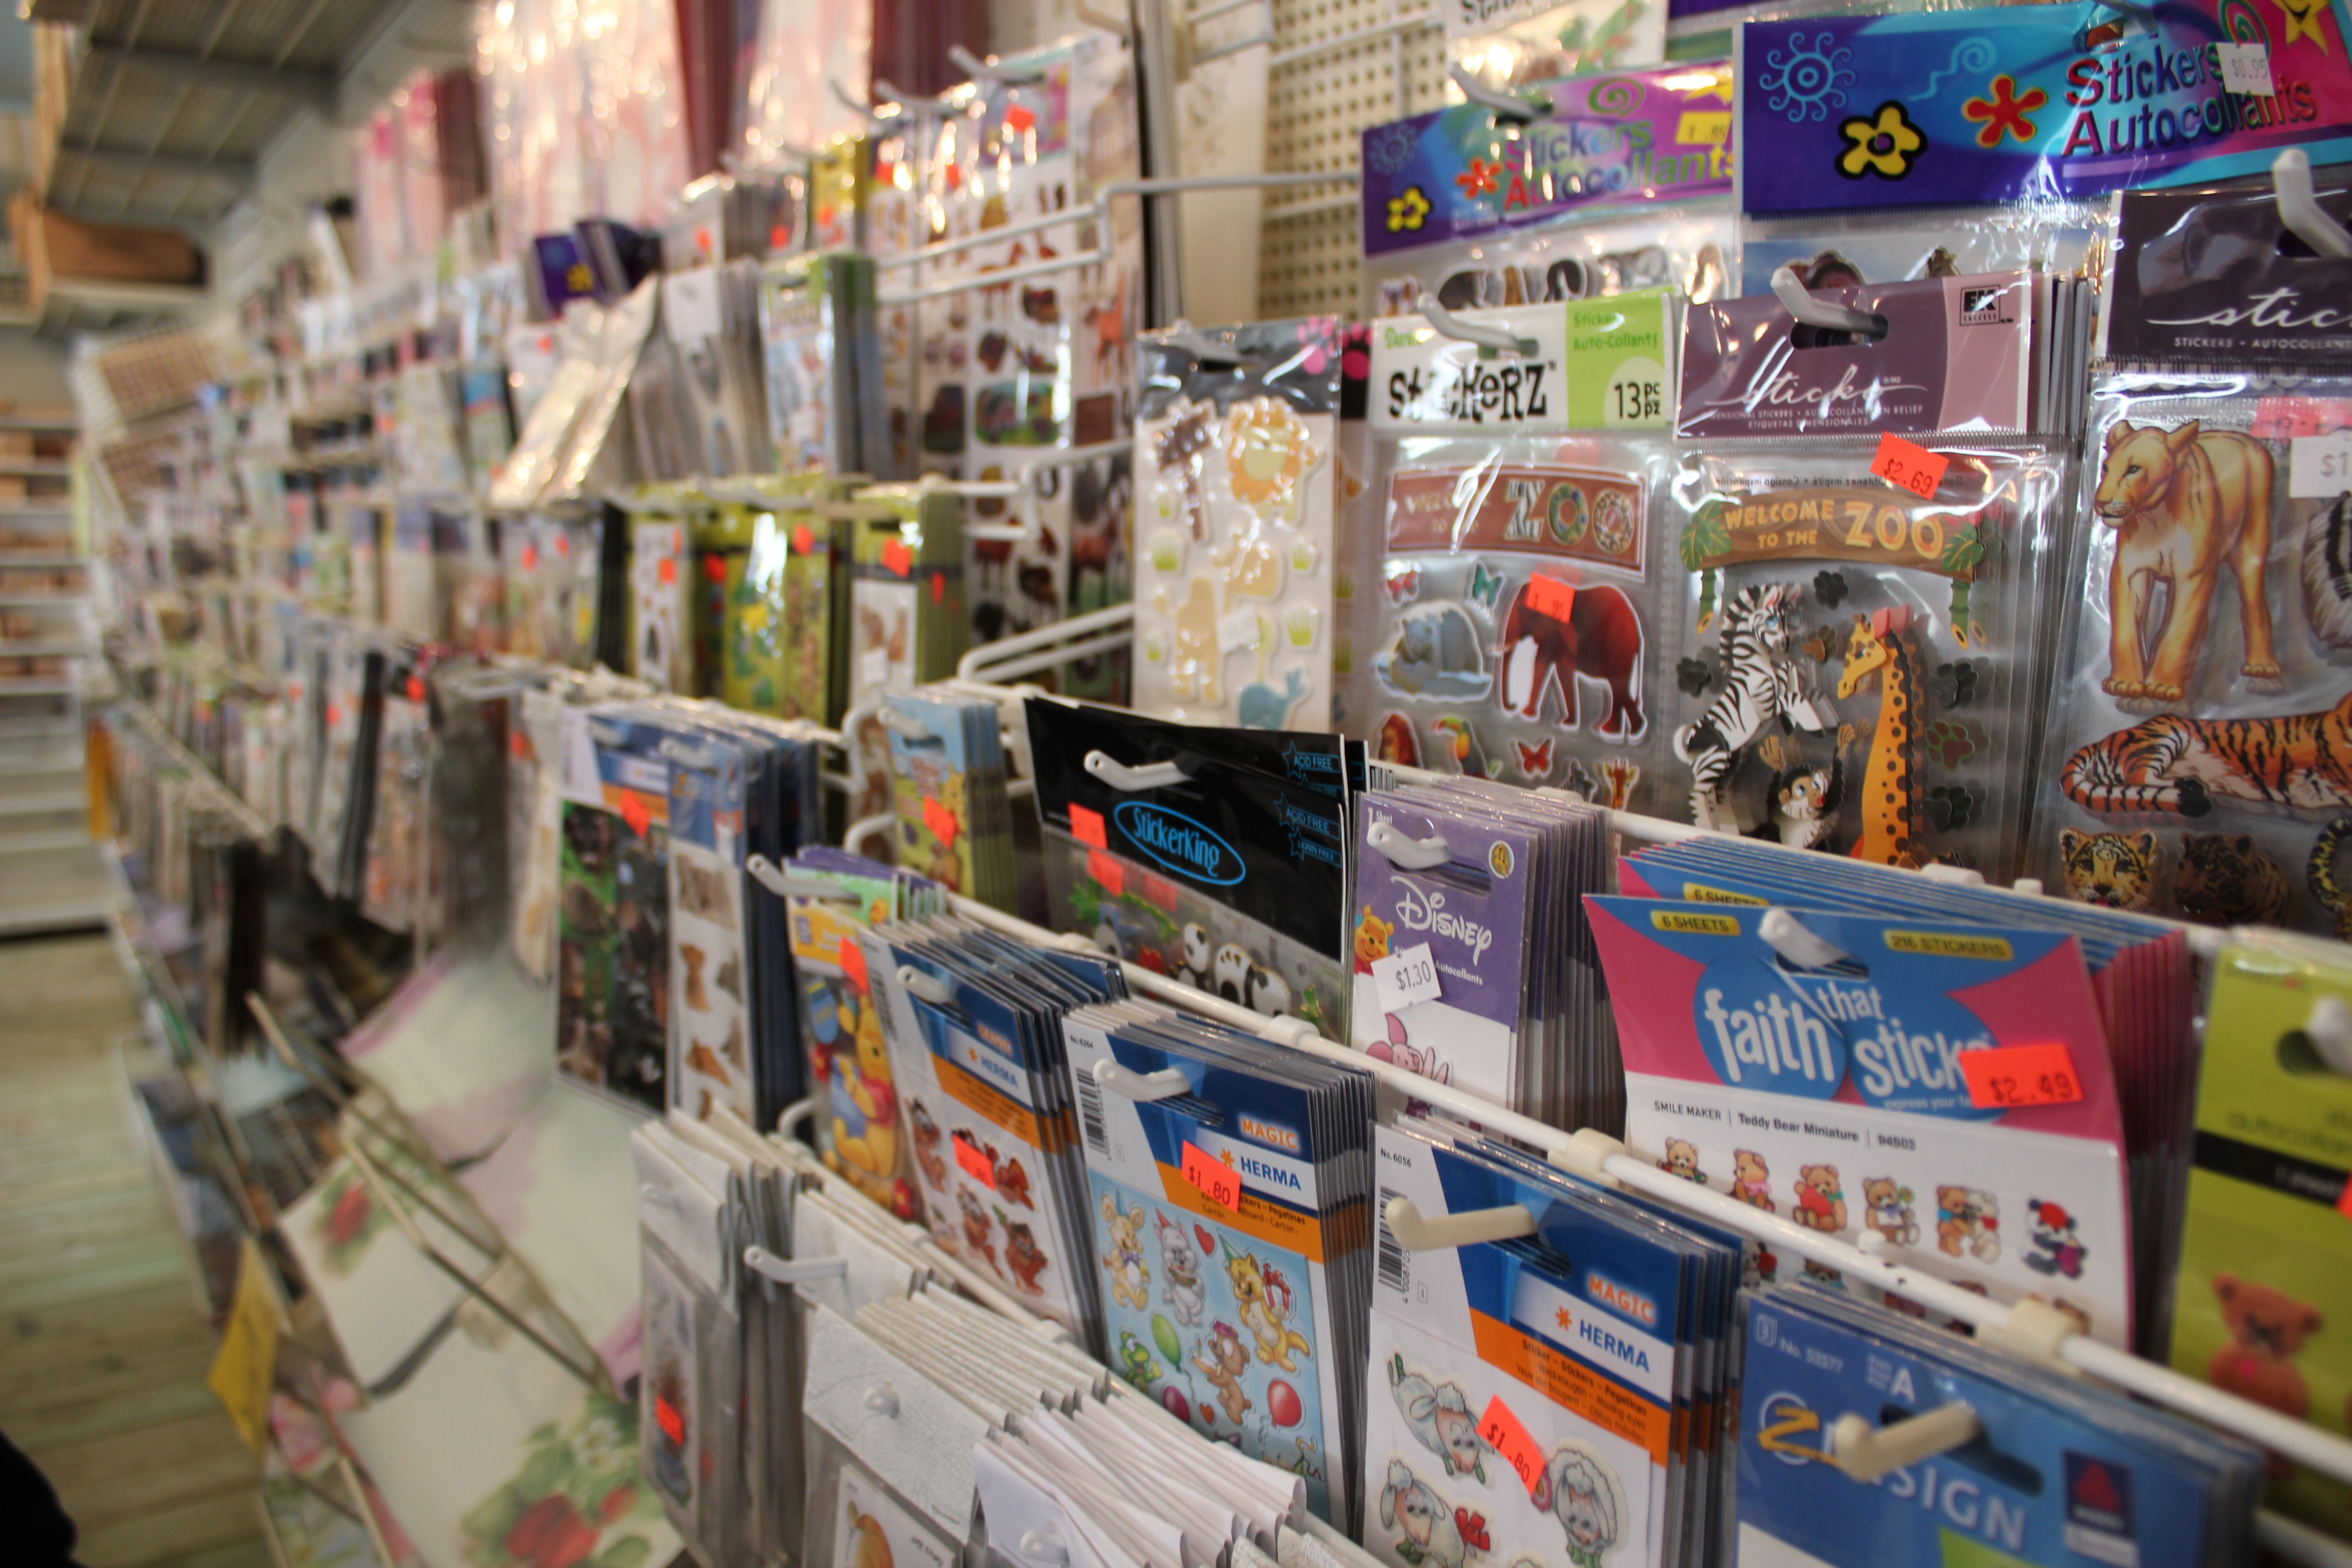 Scrapbooking supplies at Shipshewana Flea Market in Indiana